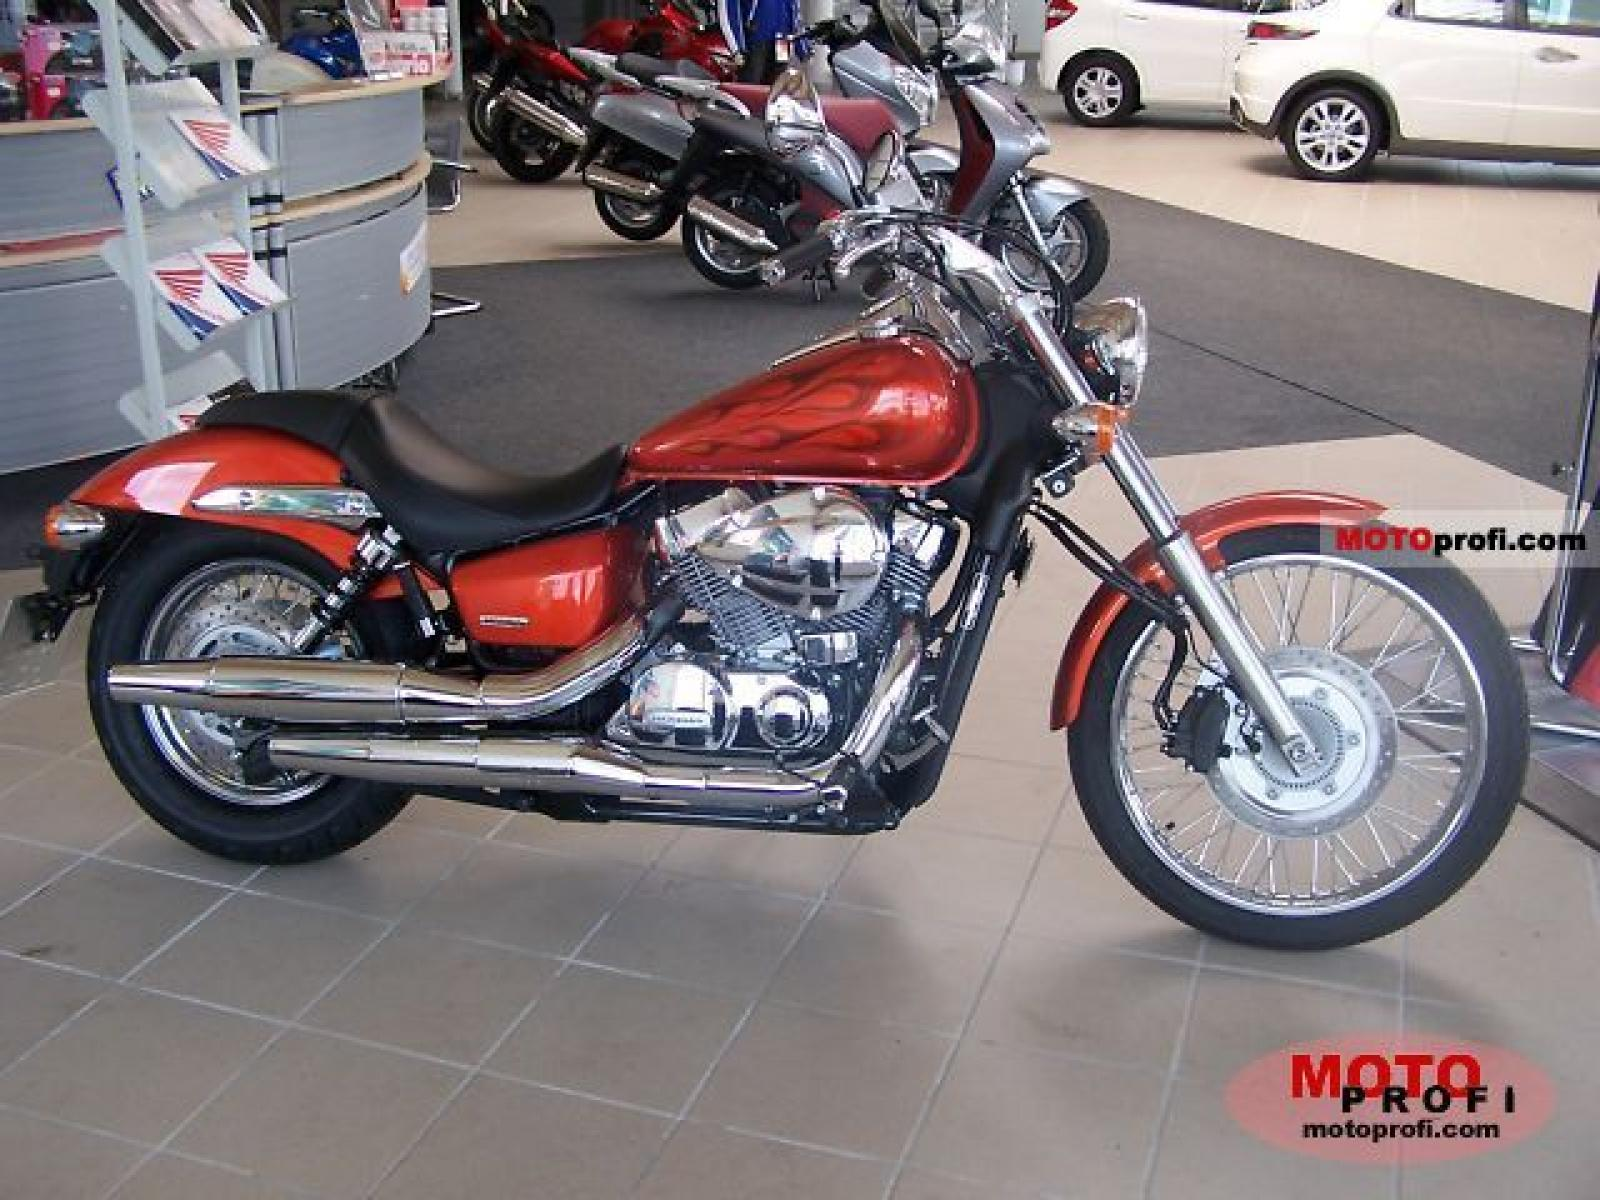 800 1024 1280 1600 Origin Honda Shadow Spirit 750 ...